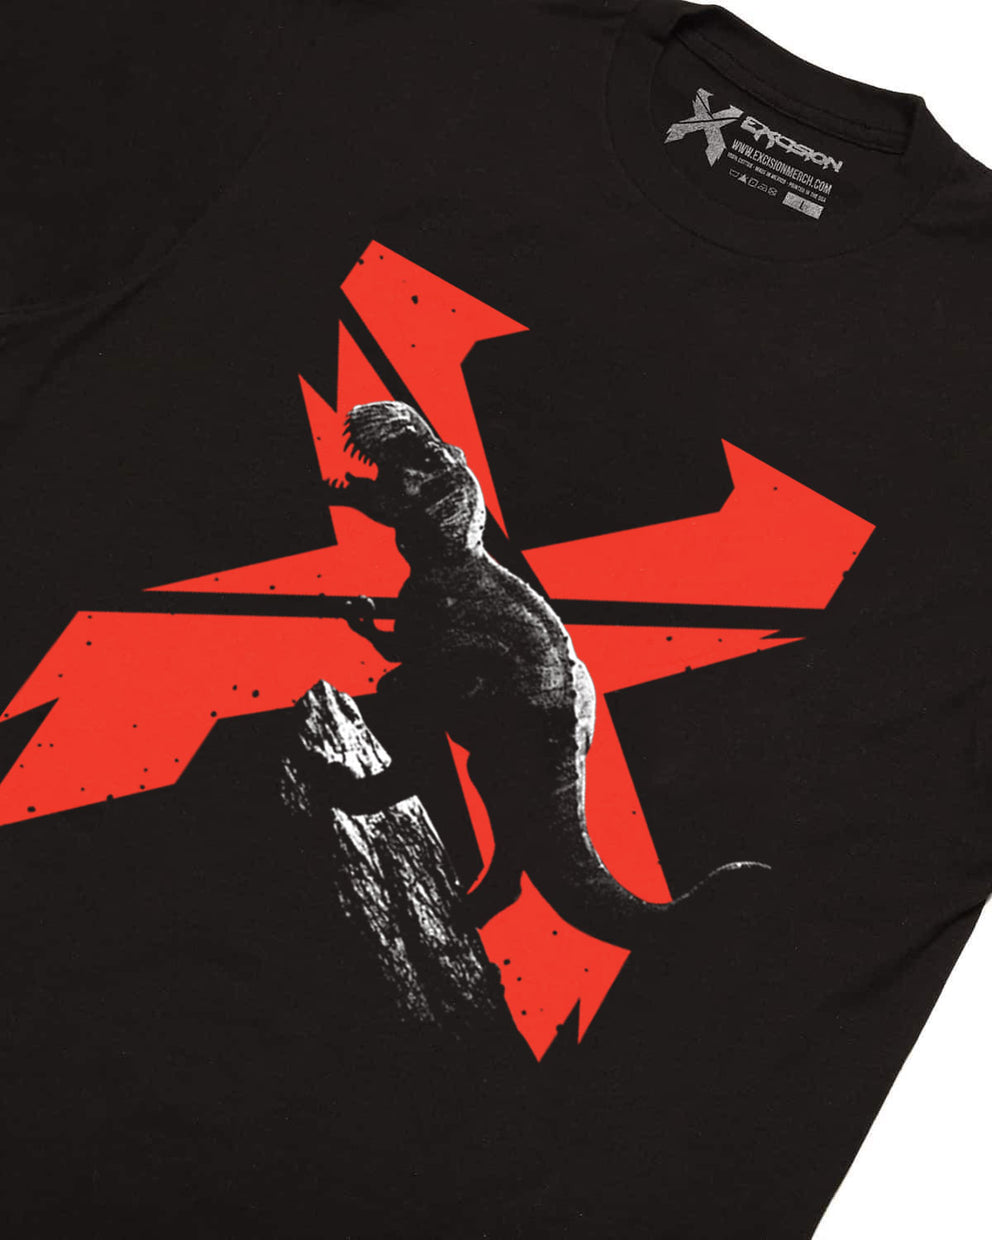 Excision 'Apex Rex' Unisex T-Shirt